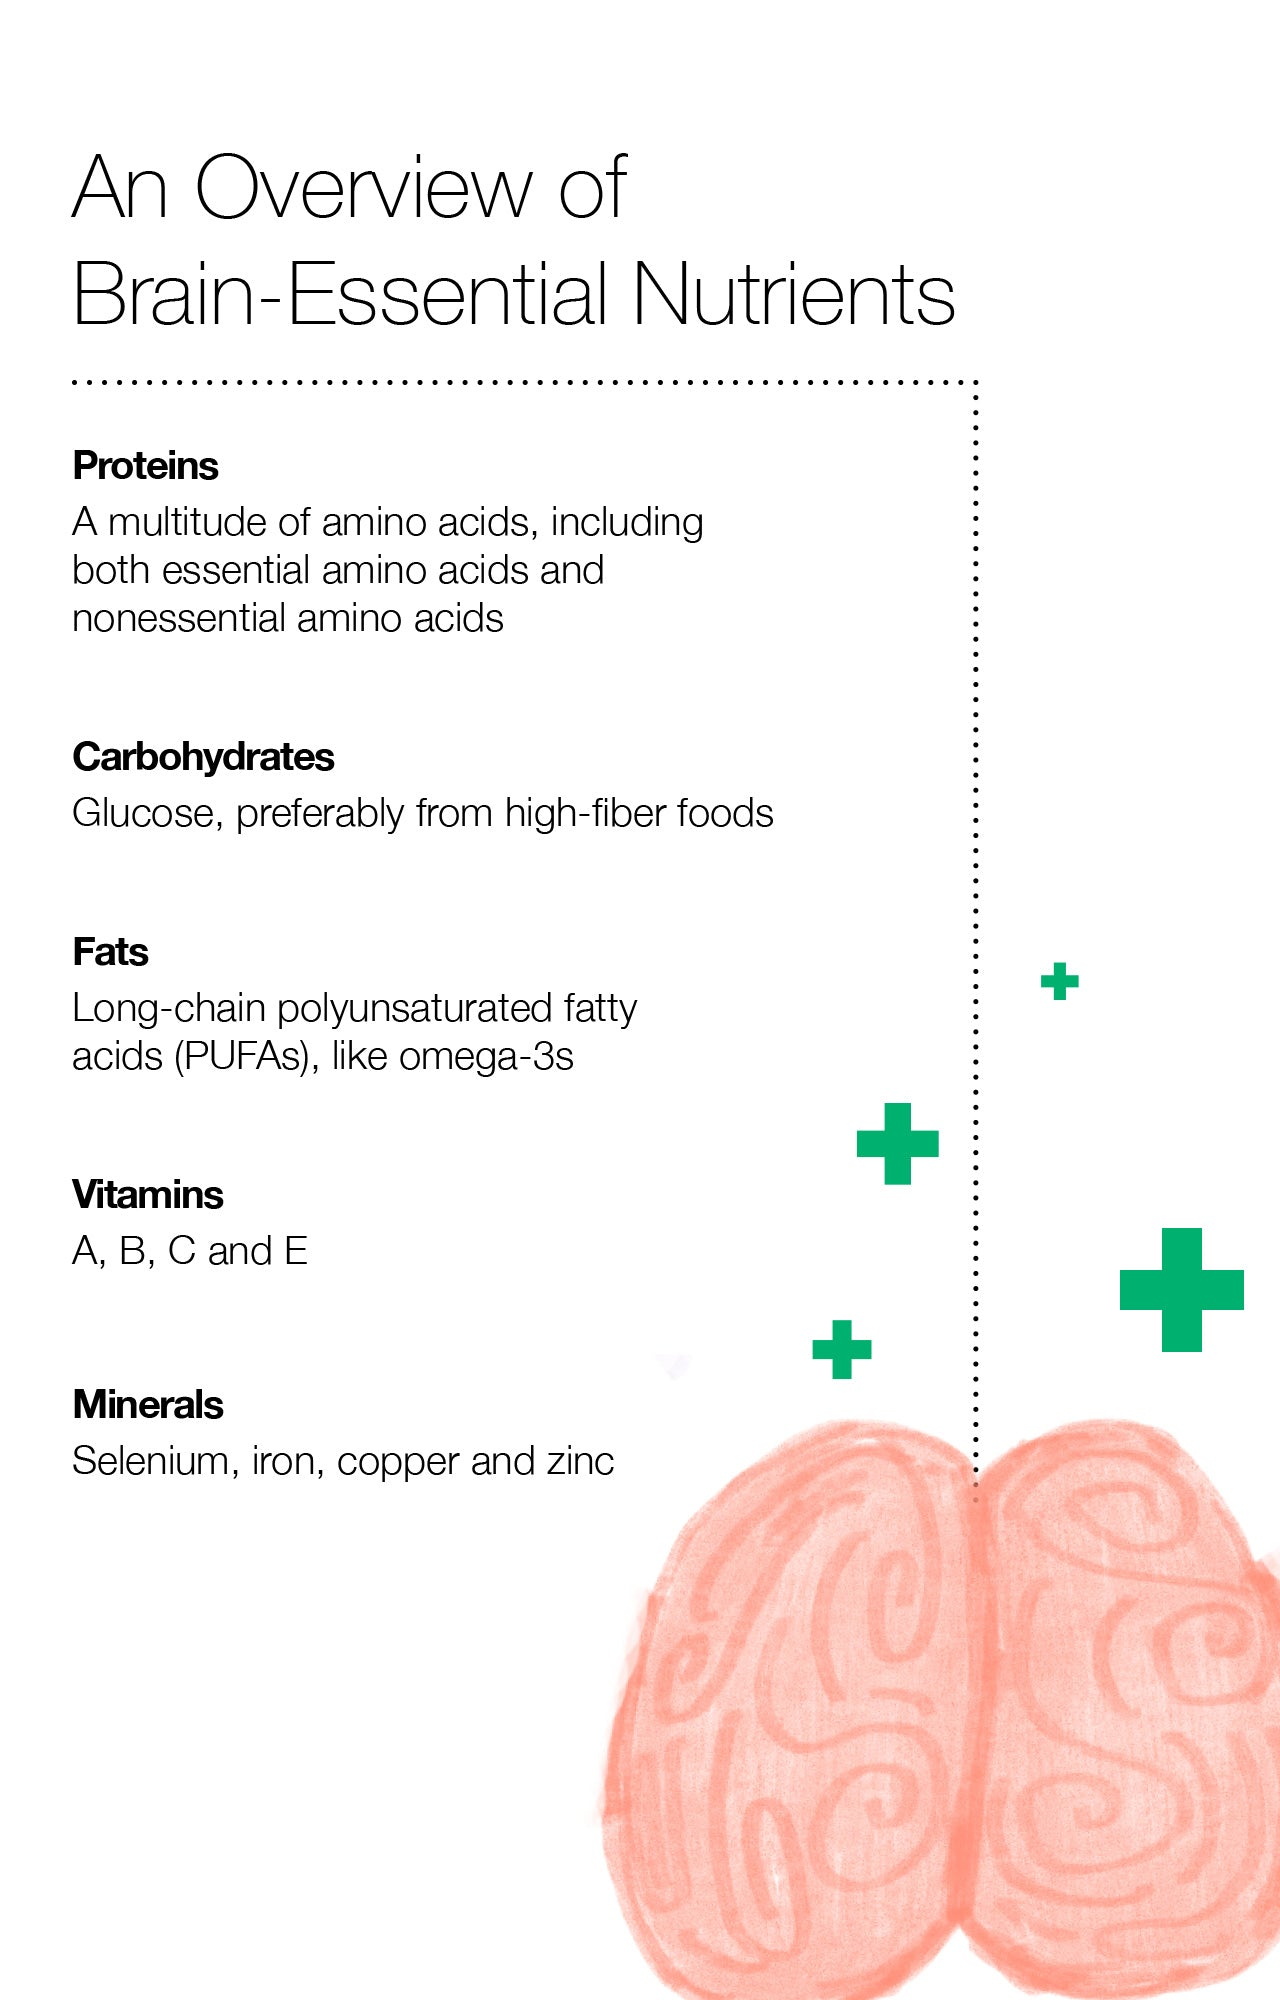 An Overview of Brain-Essential Nutrients